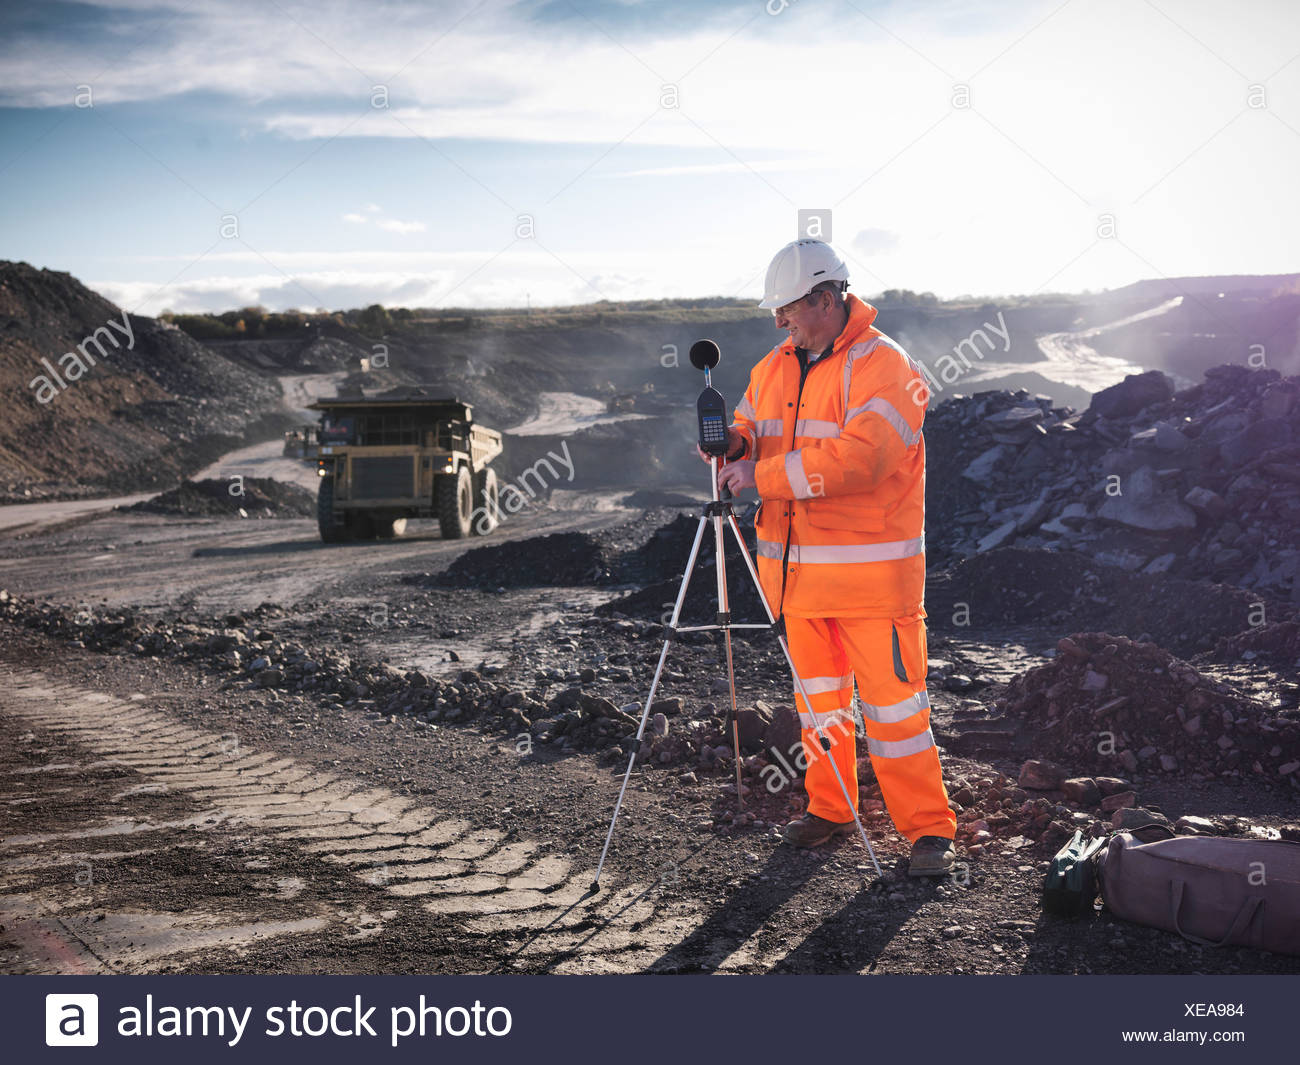 Ecologist listening to coal mine - Stock Image